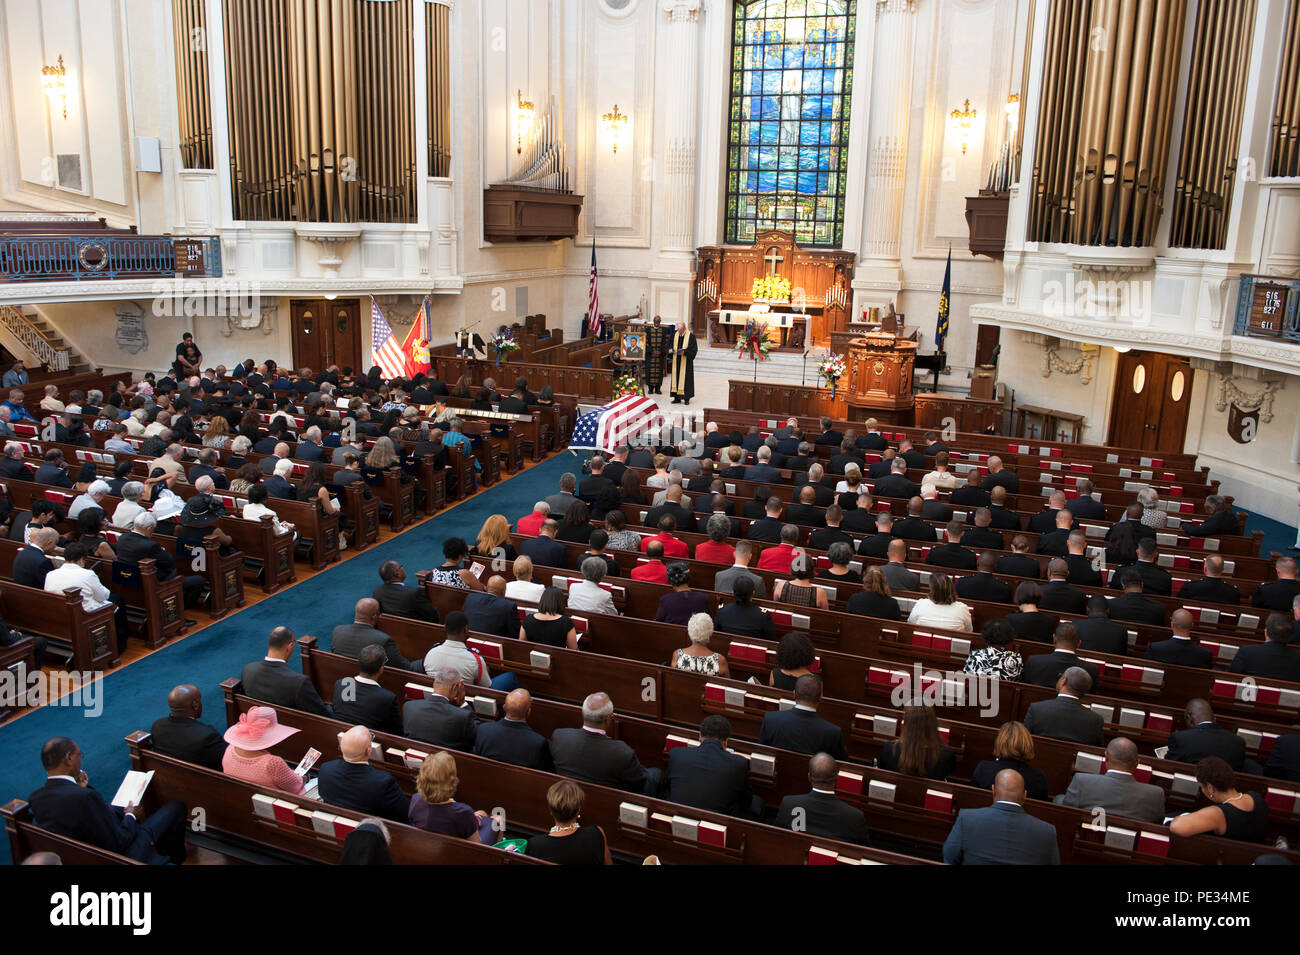 Retired United States Navy Rear Admiral Barry C. Black, 62nd Chaplain of the U.S. Senate, left, and Capt. Michael Gore, chaplain USN, recite the benediction at the memorial service of retired Lt. Gen. Frank E. Petersen Jr. at the U.S. Naval Academy Chapel, Annapolis, Md., Sept. 3, 2015. Petersen, the first African-American Marine Corps Aviator and General in history, passed away Aug. 25, 2015. (U.S. Marine Corps photo by Monique R. LaRouche/Released) - Stock Image